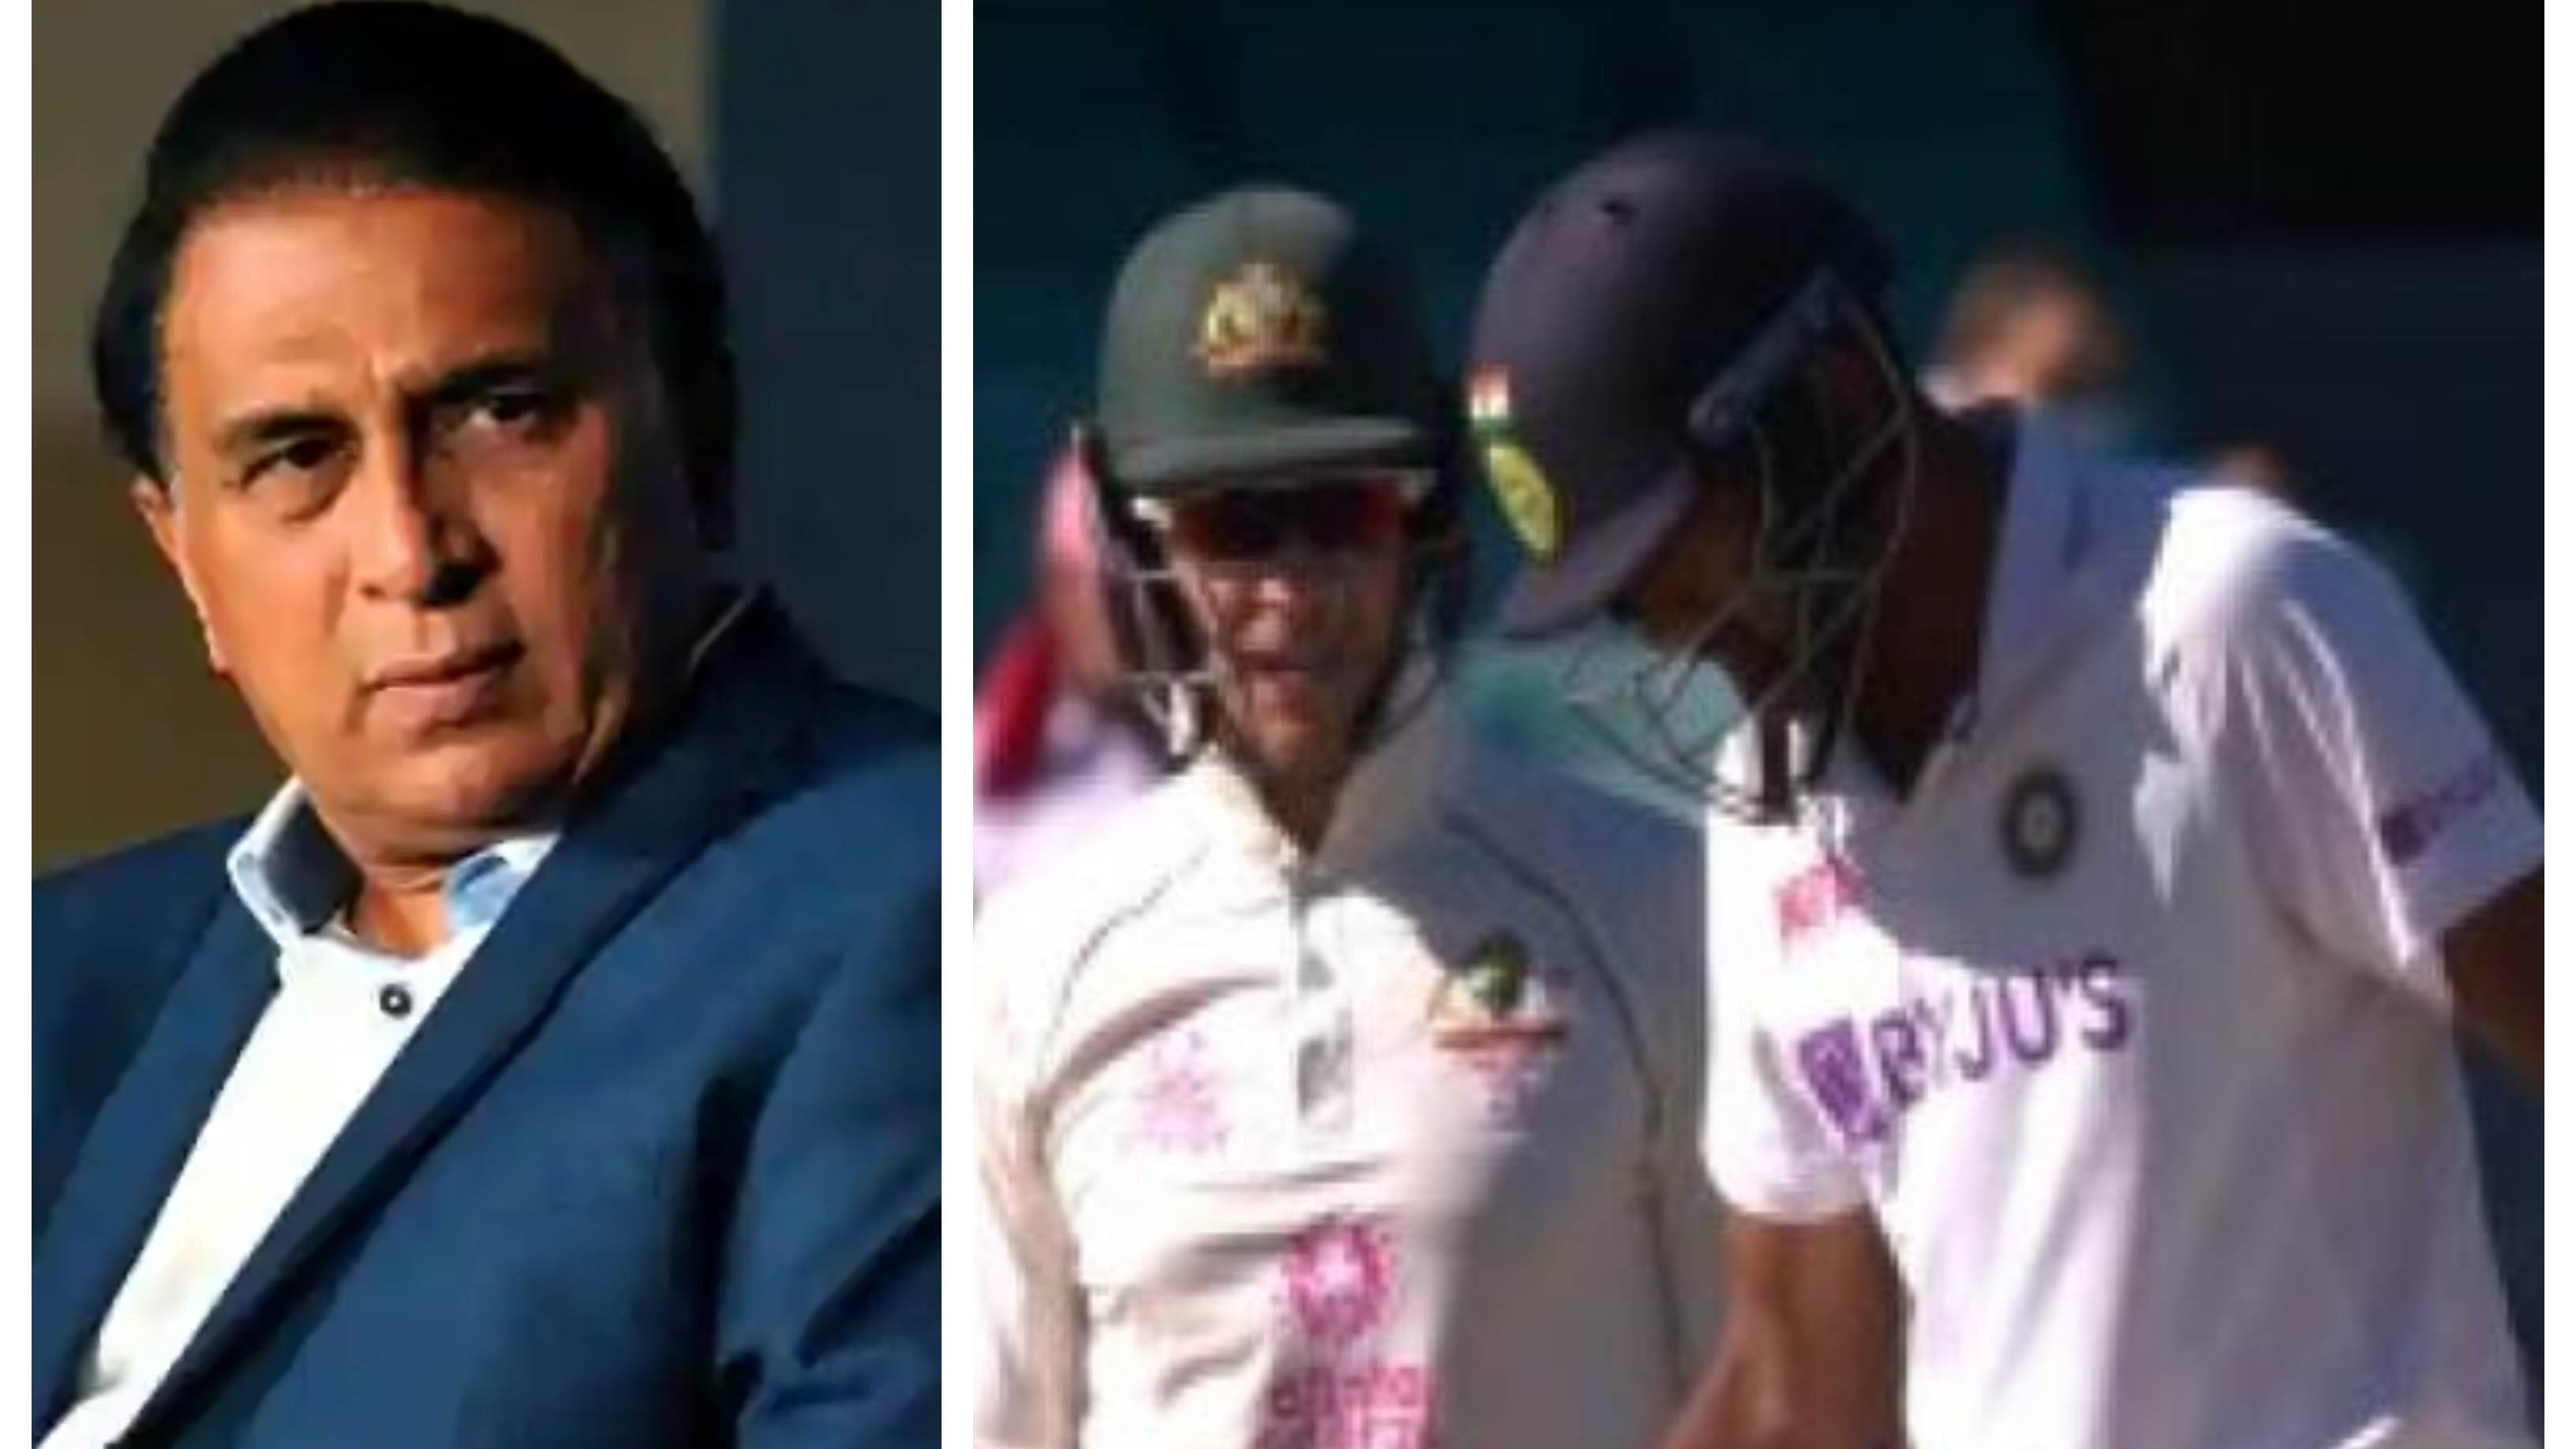 AUS v IND 2020-21: 'It was unbefitting of a captain', Gavaskar slams Paine for his dirty sledging in 3rd Test